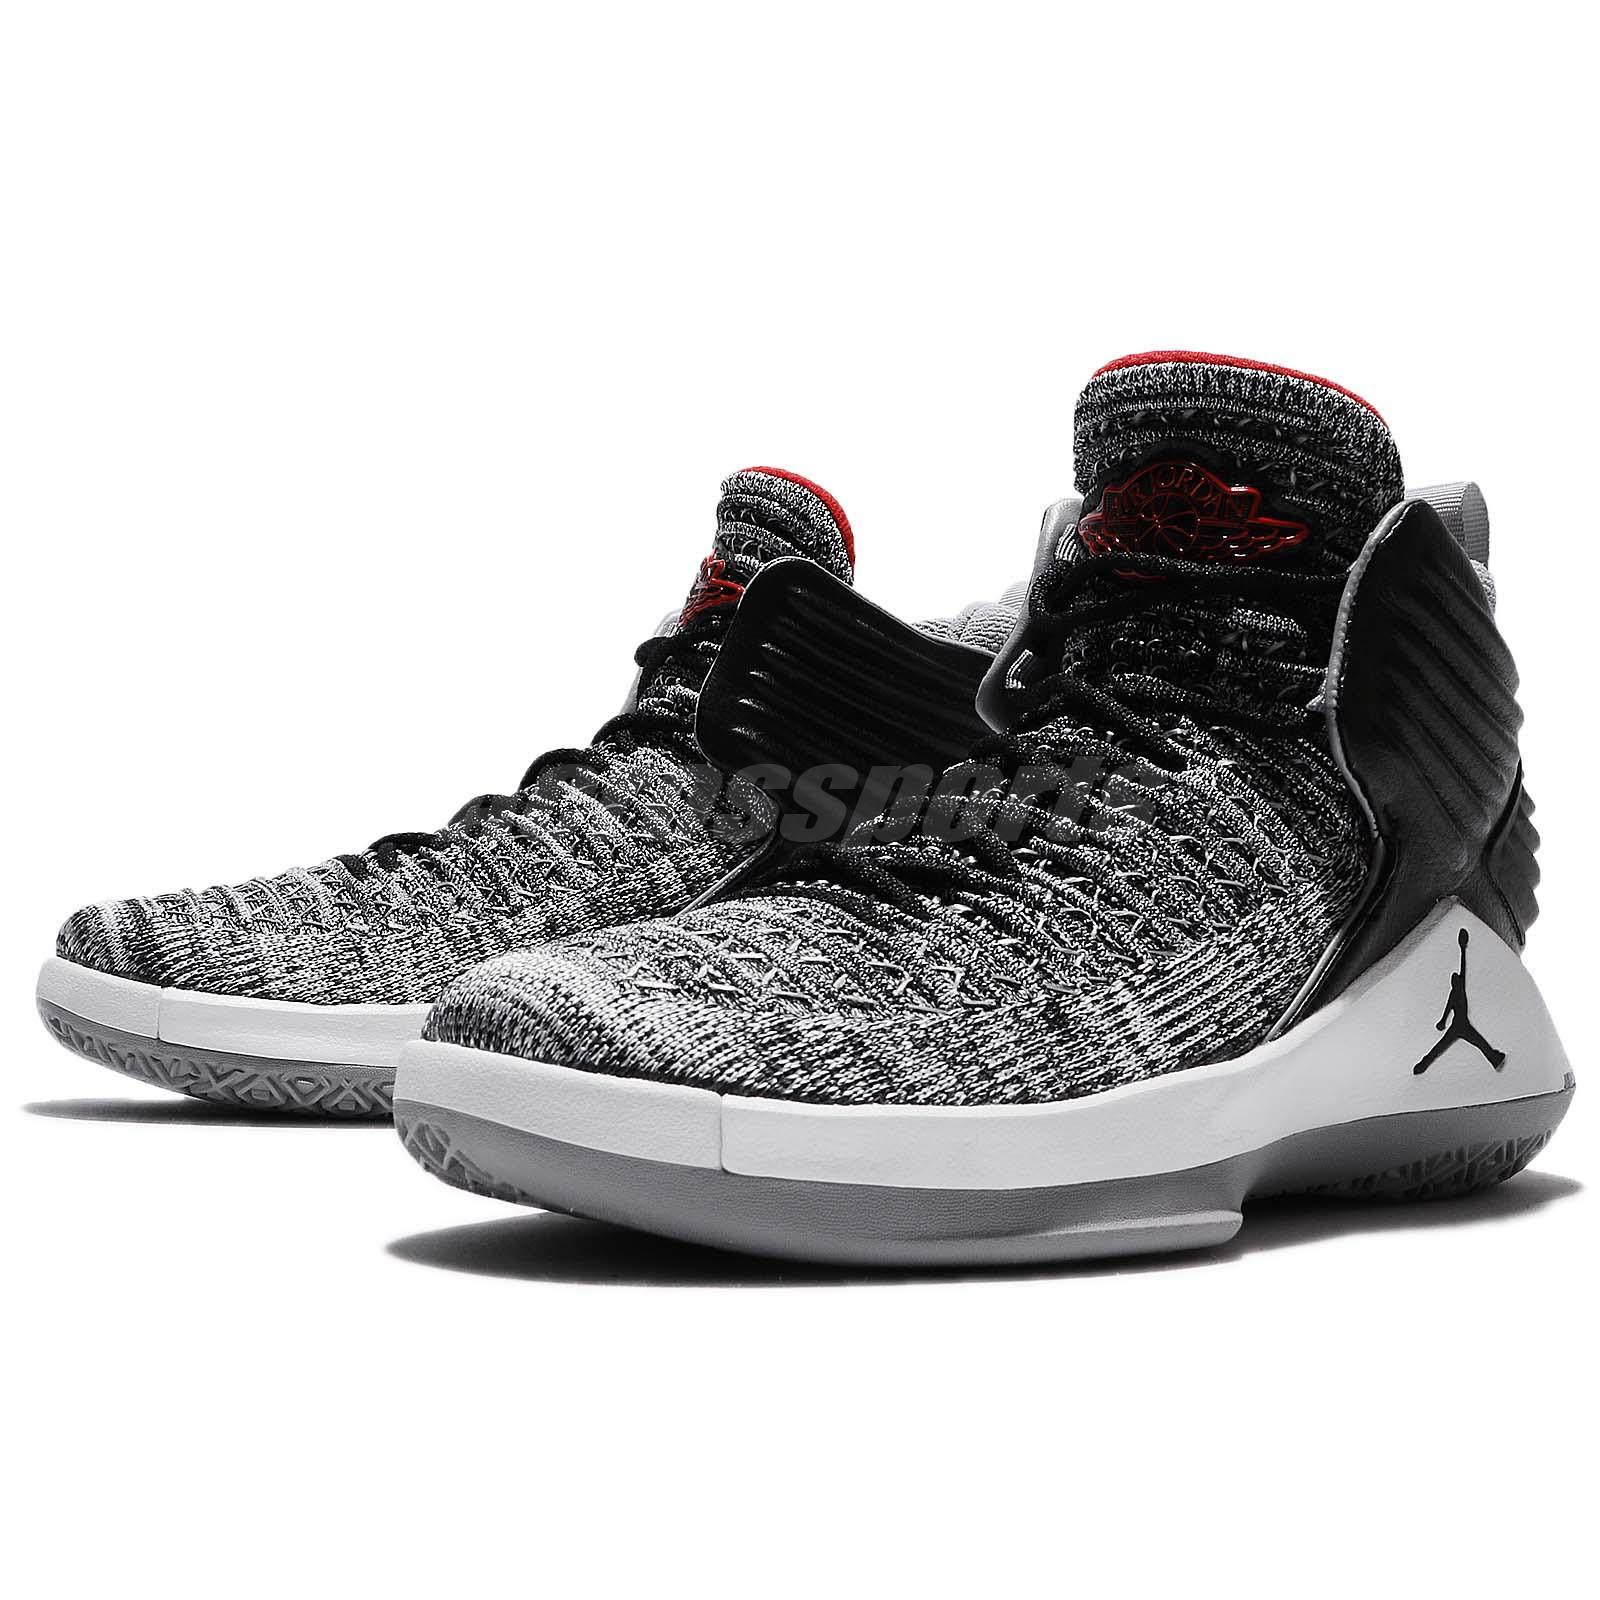 quality design 27a6a b8771 air jordan 32 mvp nz